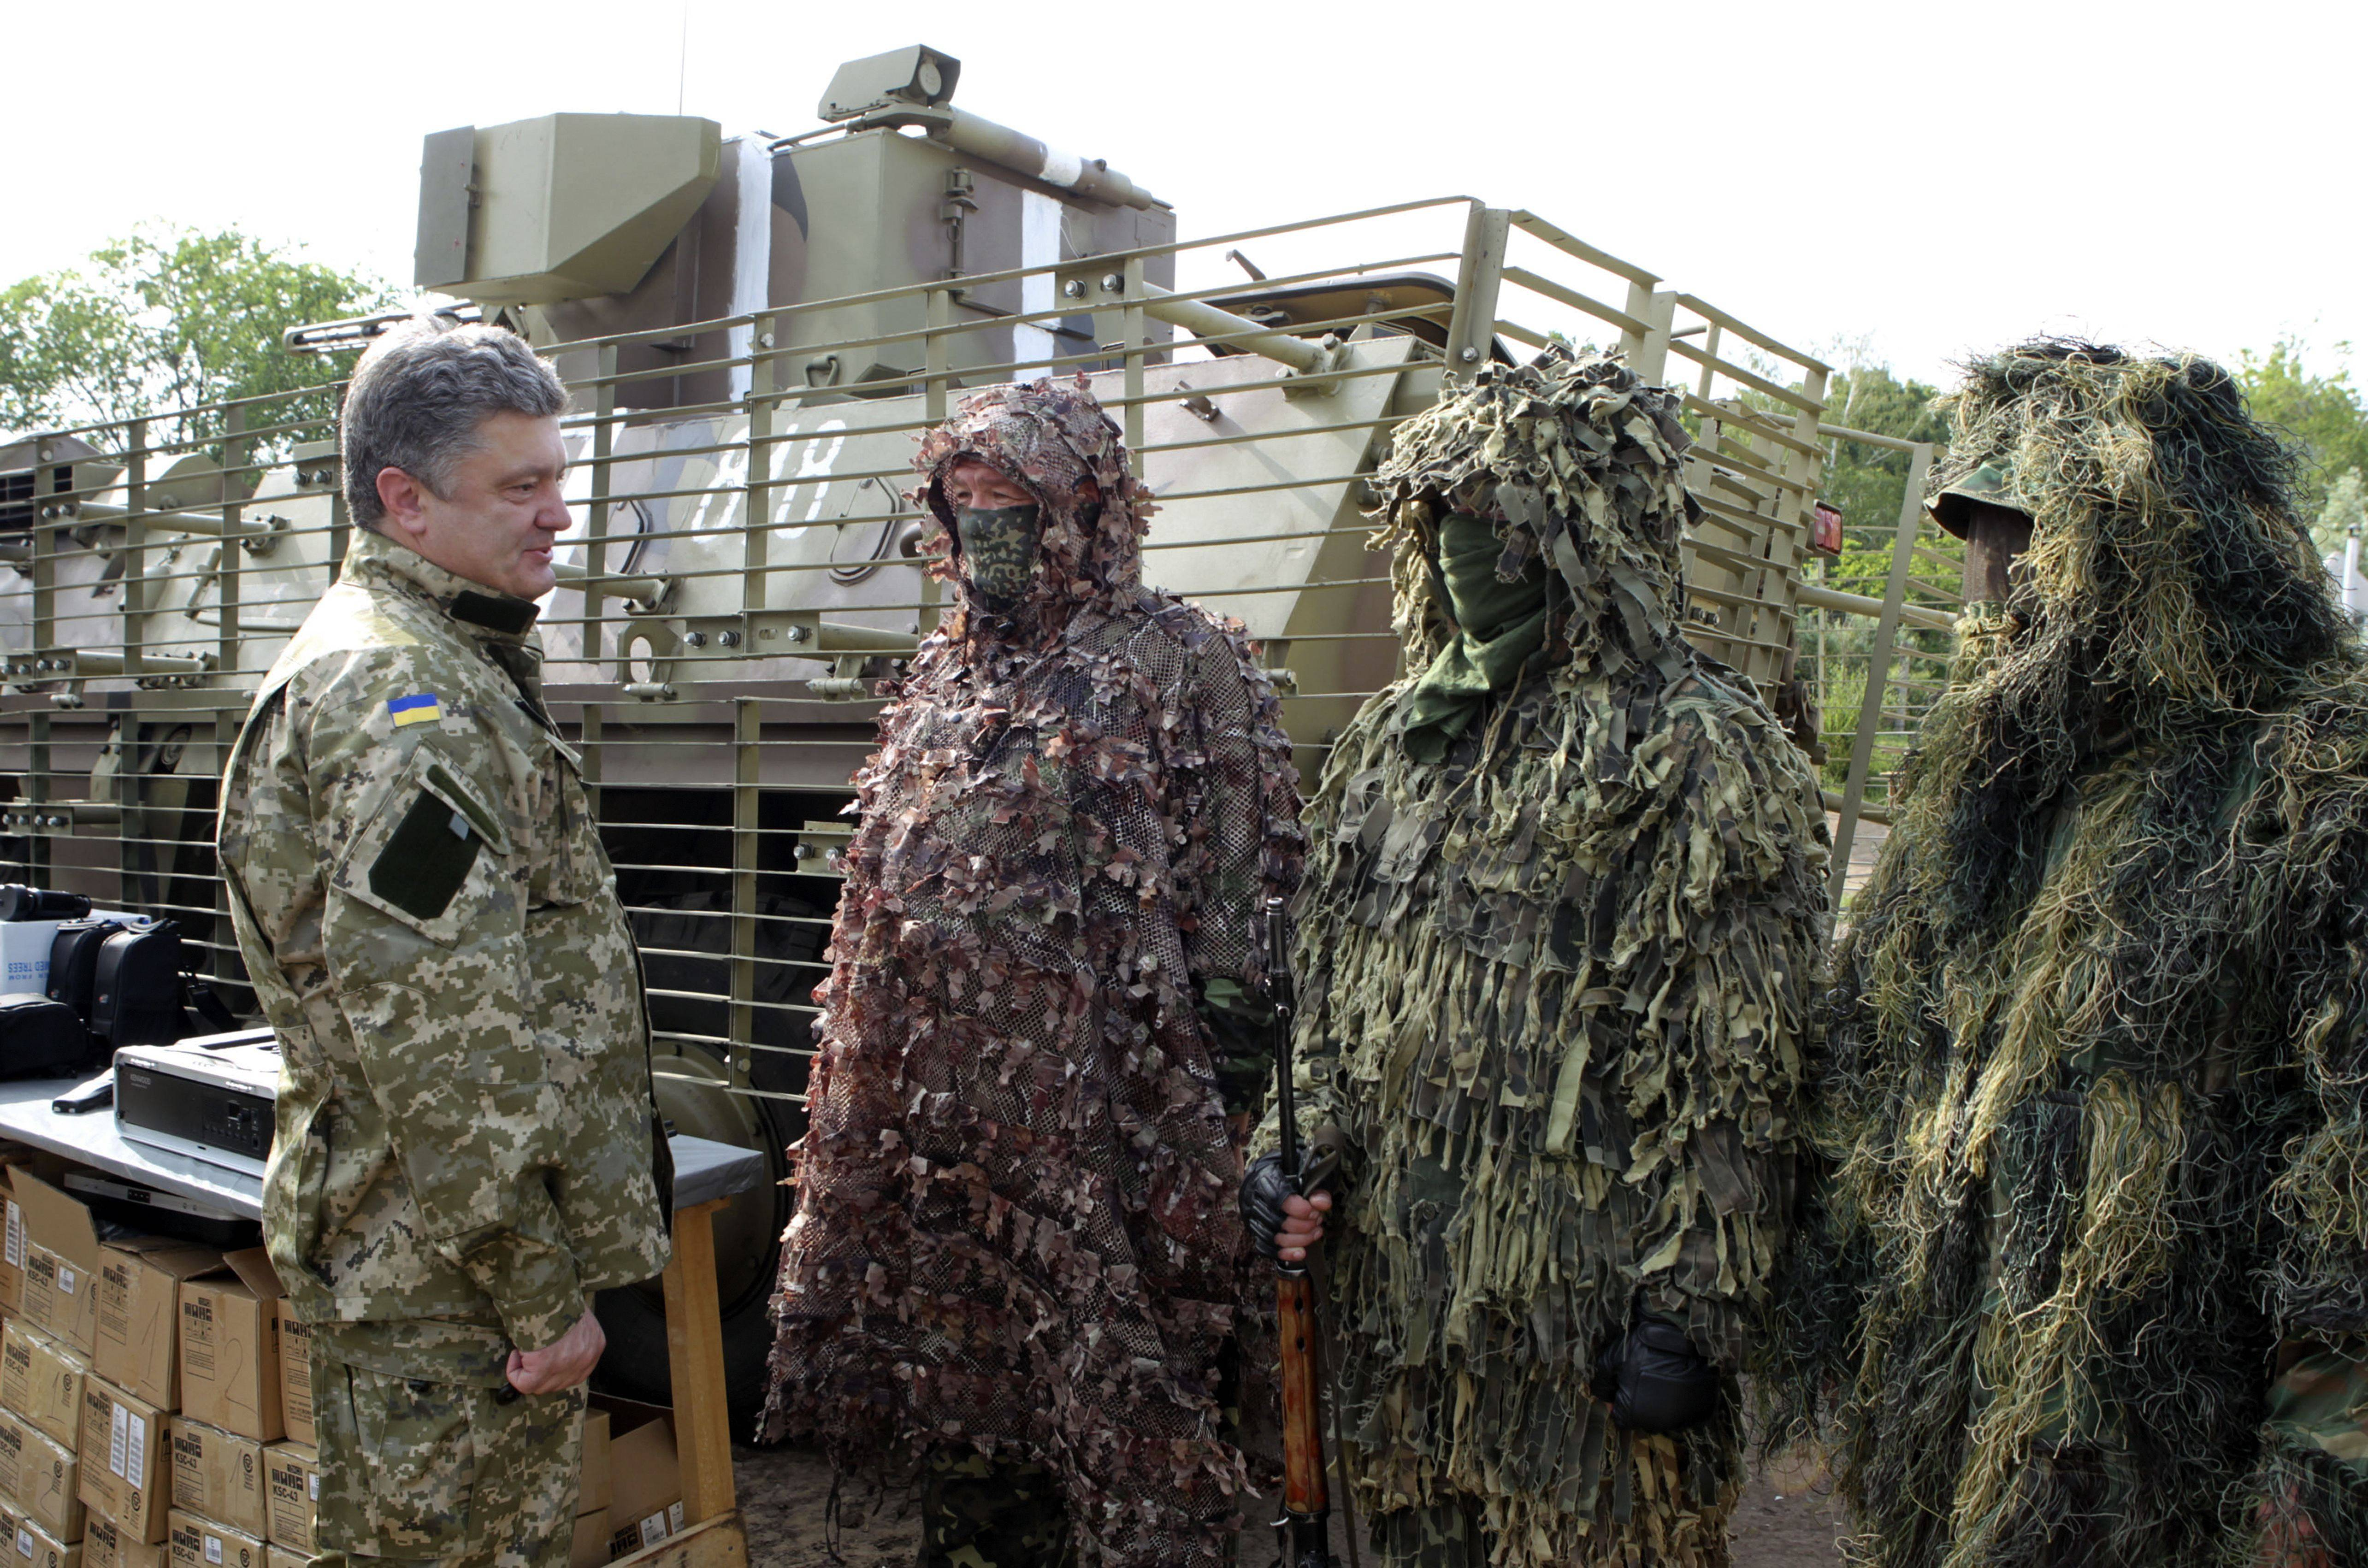 In this photo taken on Friday, eastern Ukraine Ukrainian President Petro Poroshenko, left, visits troops. Poroshenko in a televised address early Tuesday said he was abandoning a unilateral cease-fire in the conflict with pro-Russian separatists and sending military forces back on the offensive after talks with Russia and European leaders failed to start a broader peace process. The cease-fire expired Monday evening.